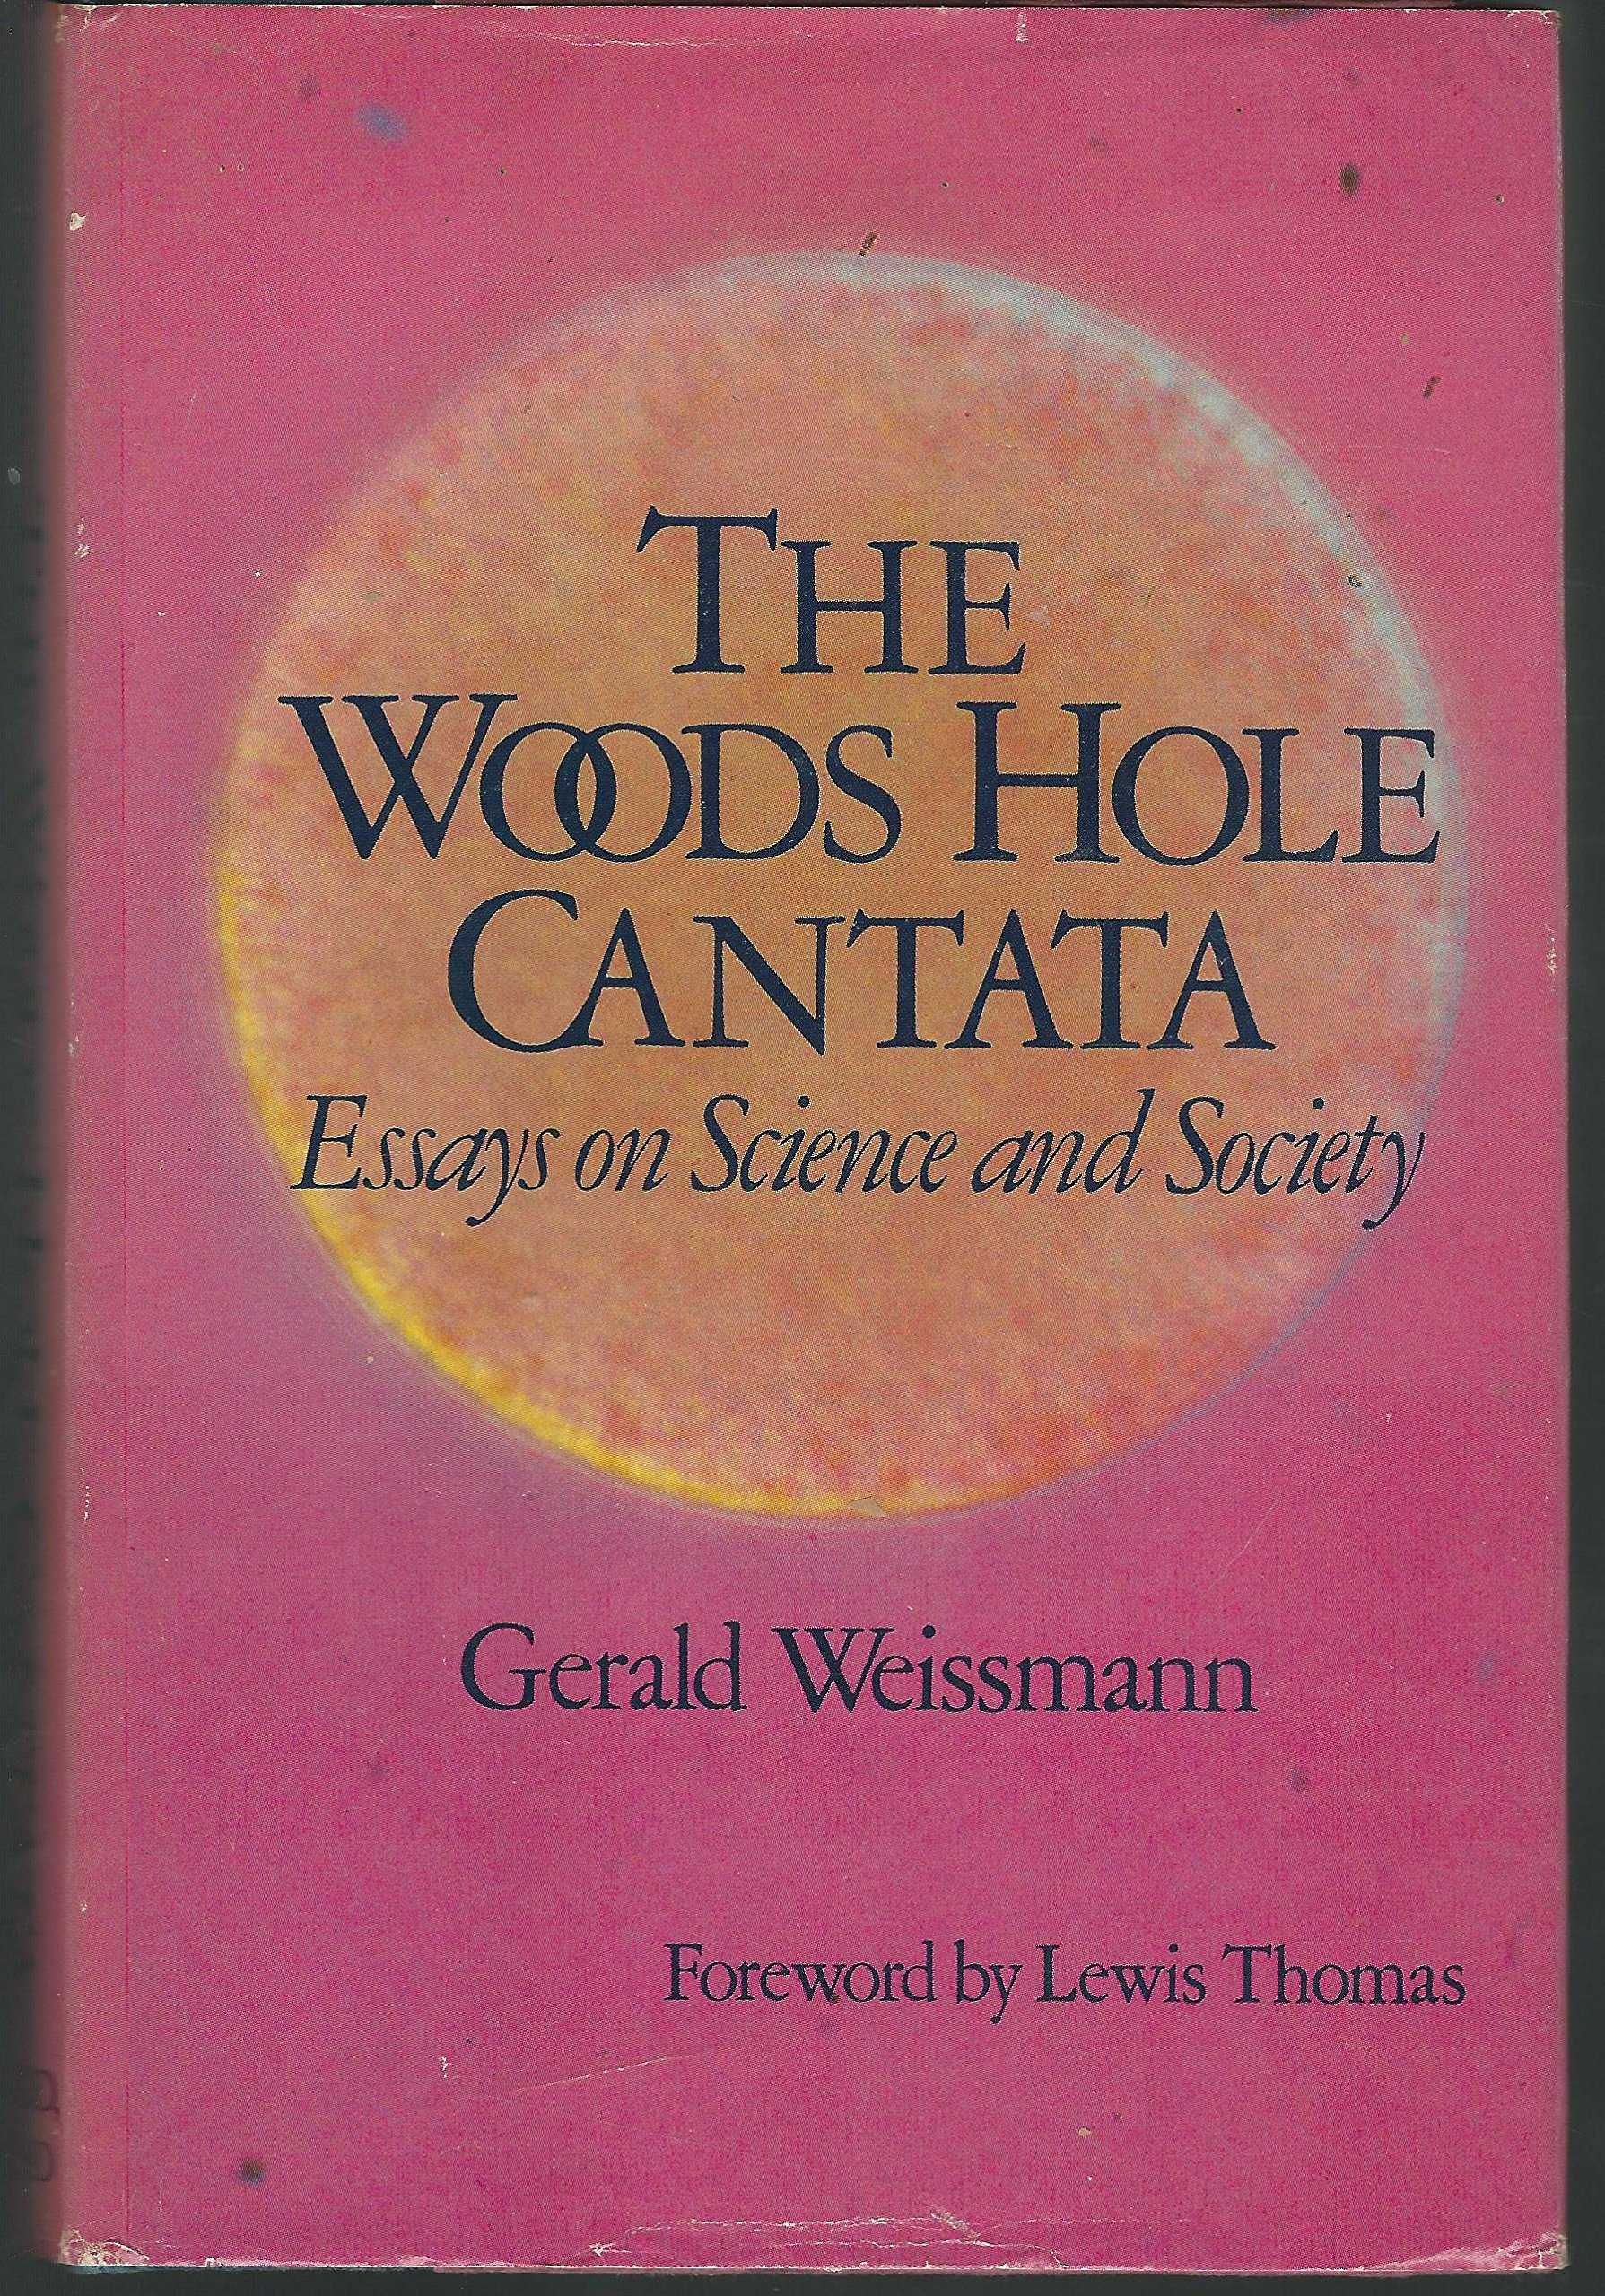 The Woods Hole Cantata Essays On Science And Society Gerald  The Woods Hole Cantata Essays On Science And Society Paperback  February